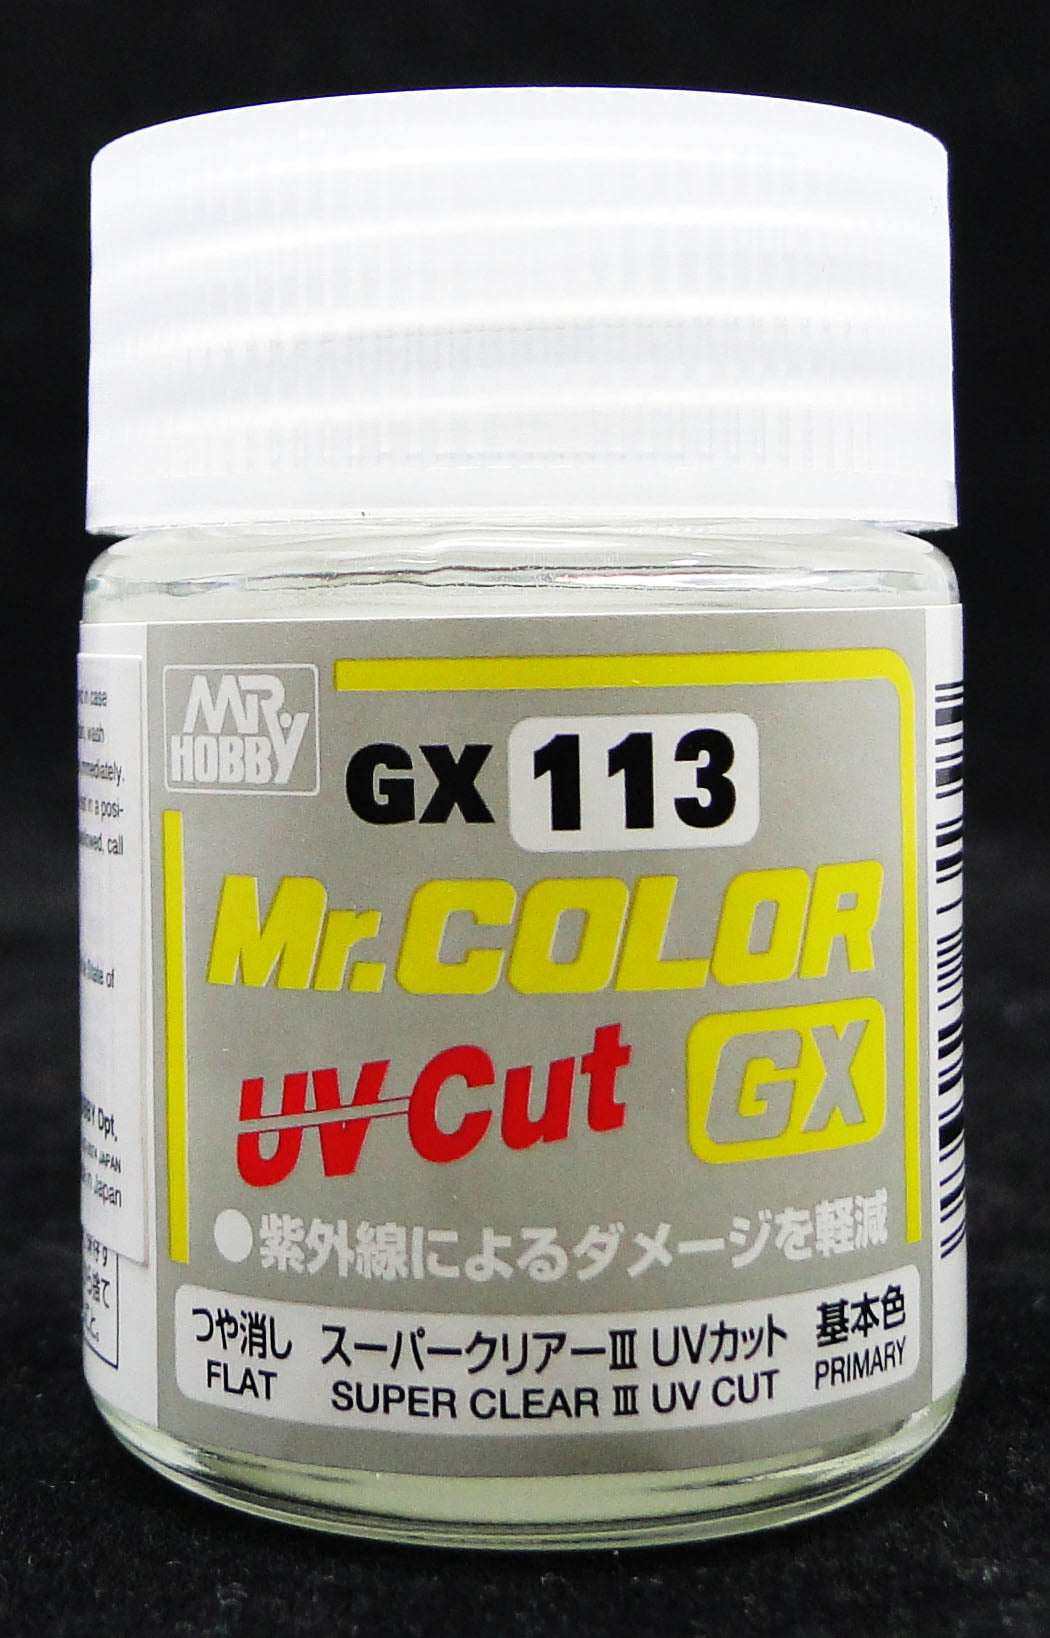 Mr. Hobby Mr. Color GX Super Clear III UV Cut Flat